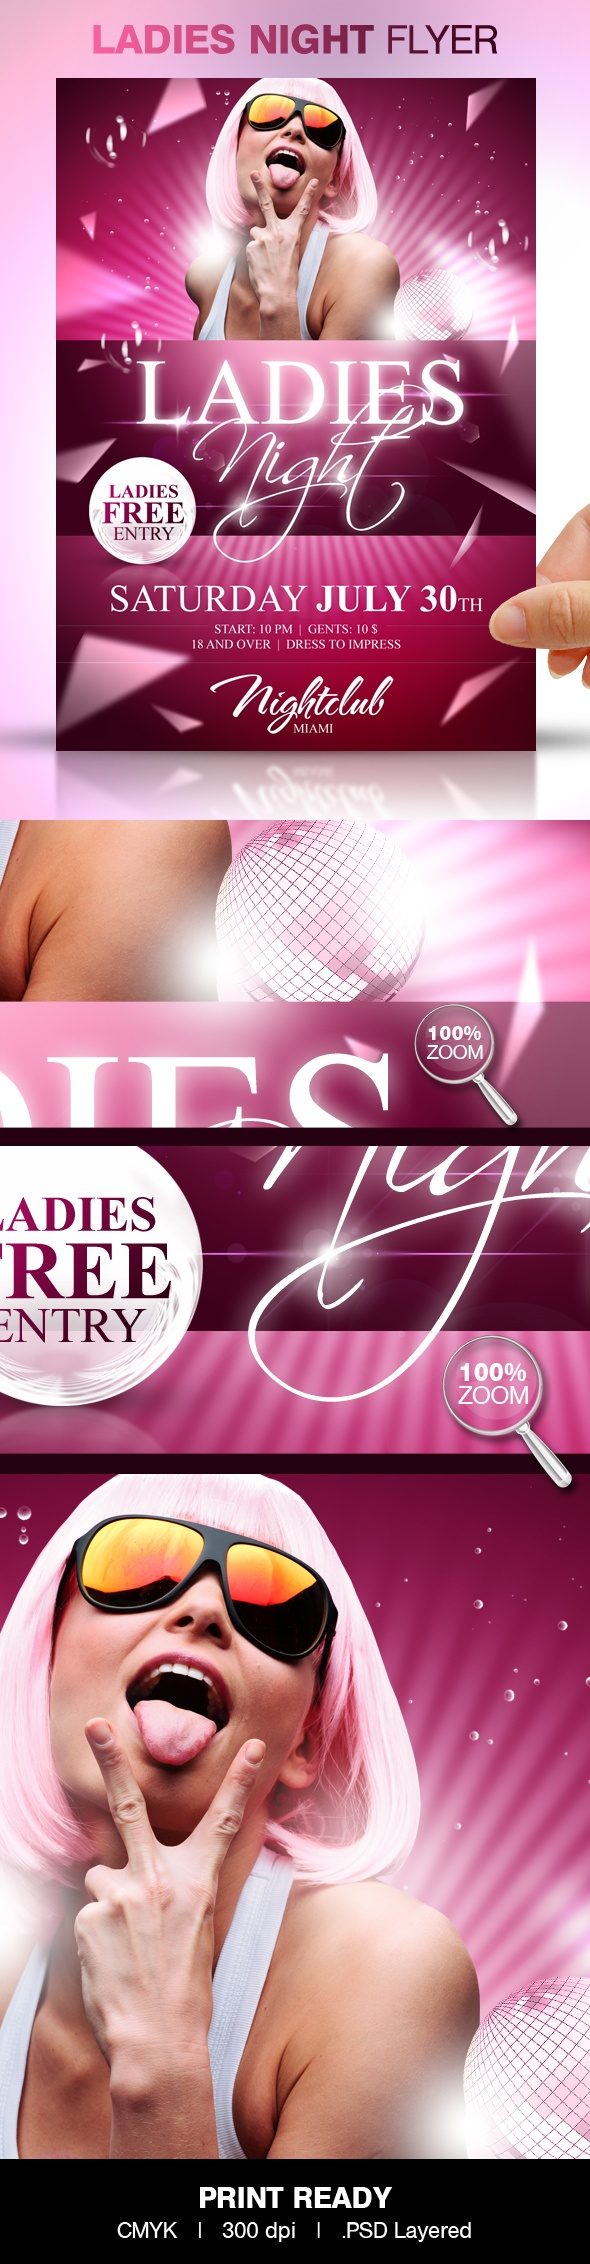 Ladies Night Party Flyer Template by Party Flyer, via Behance